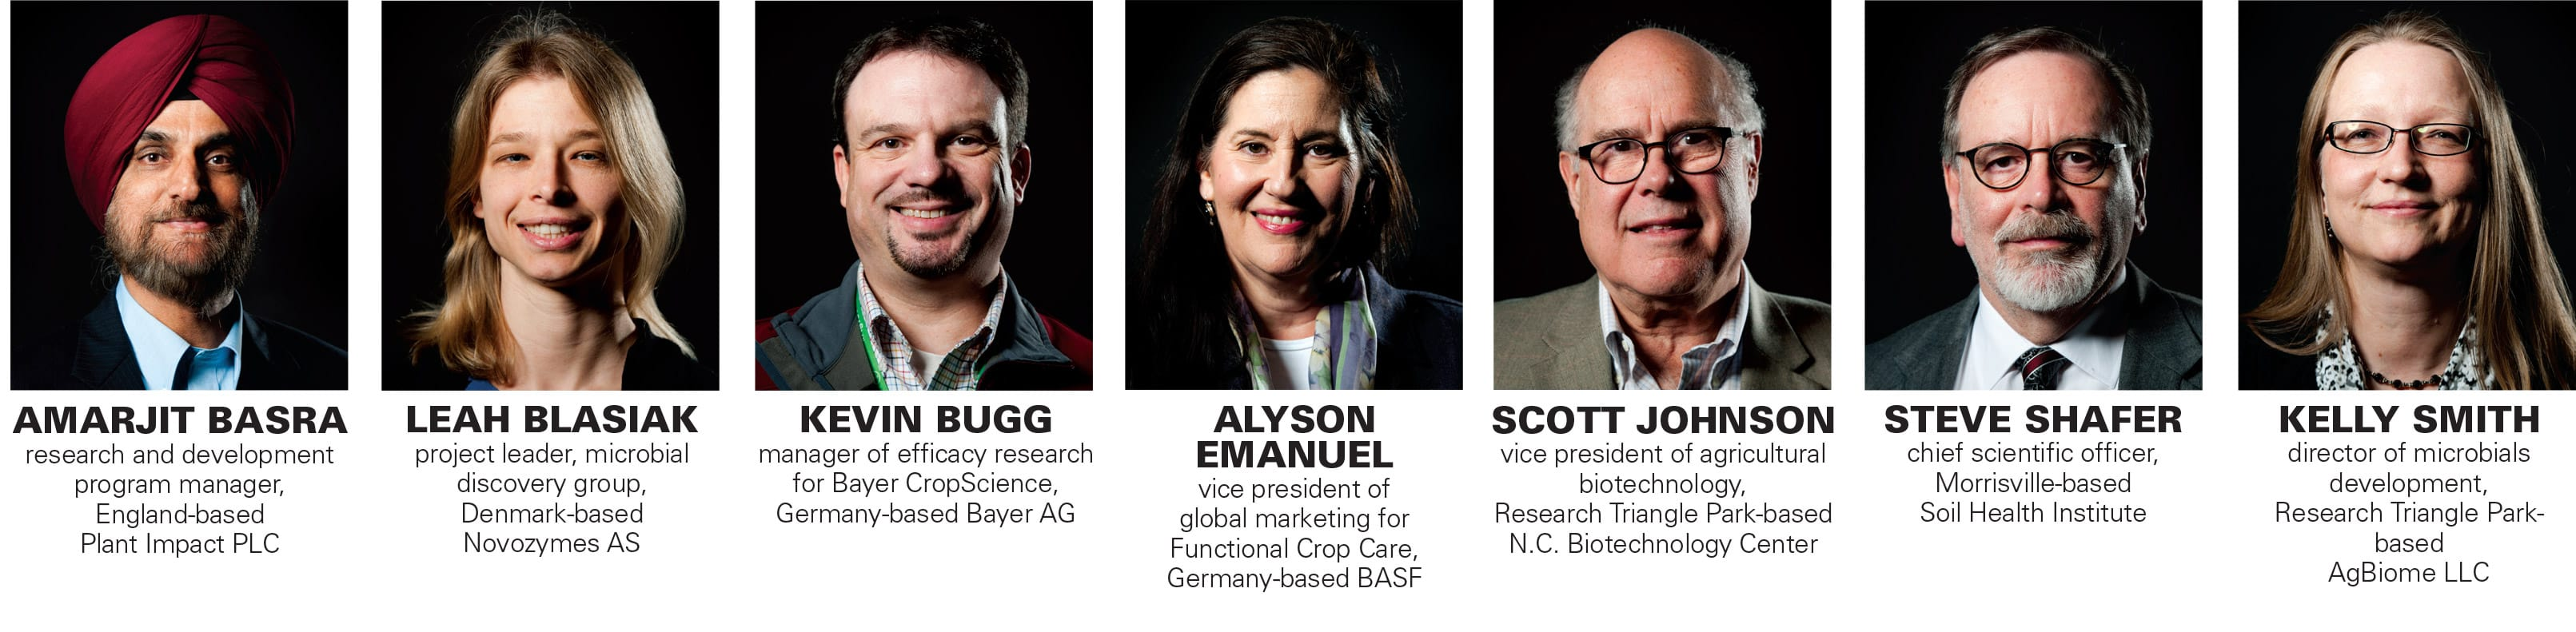 Life Sciences round table